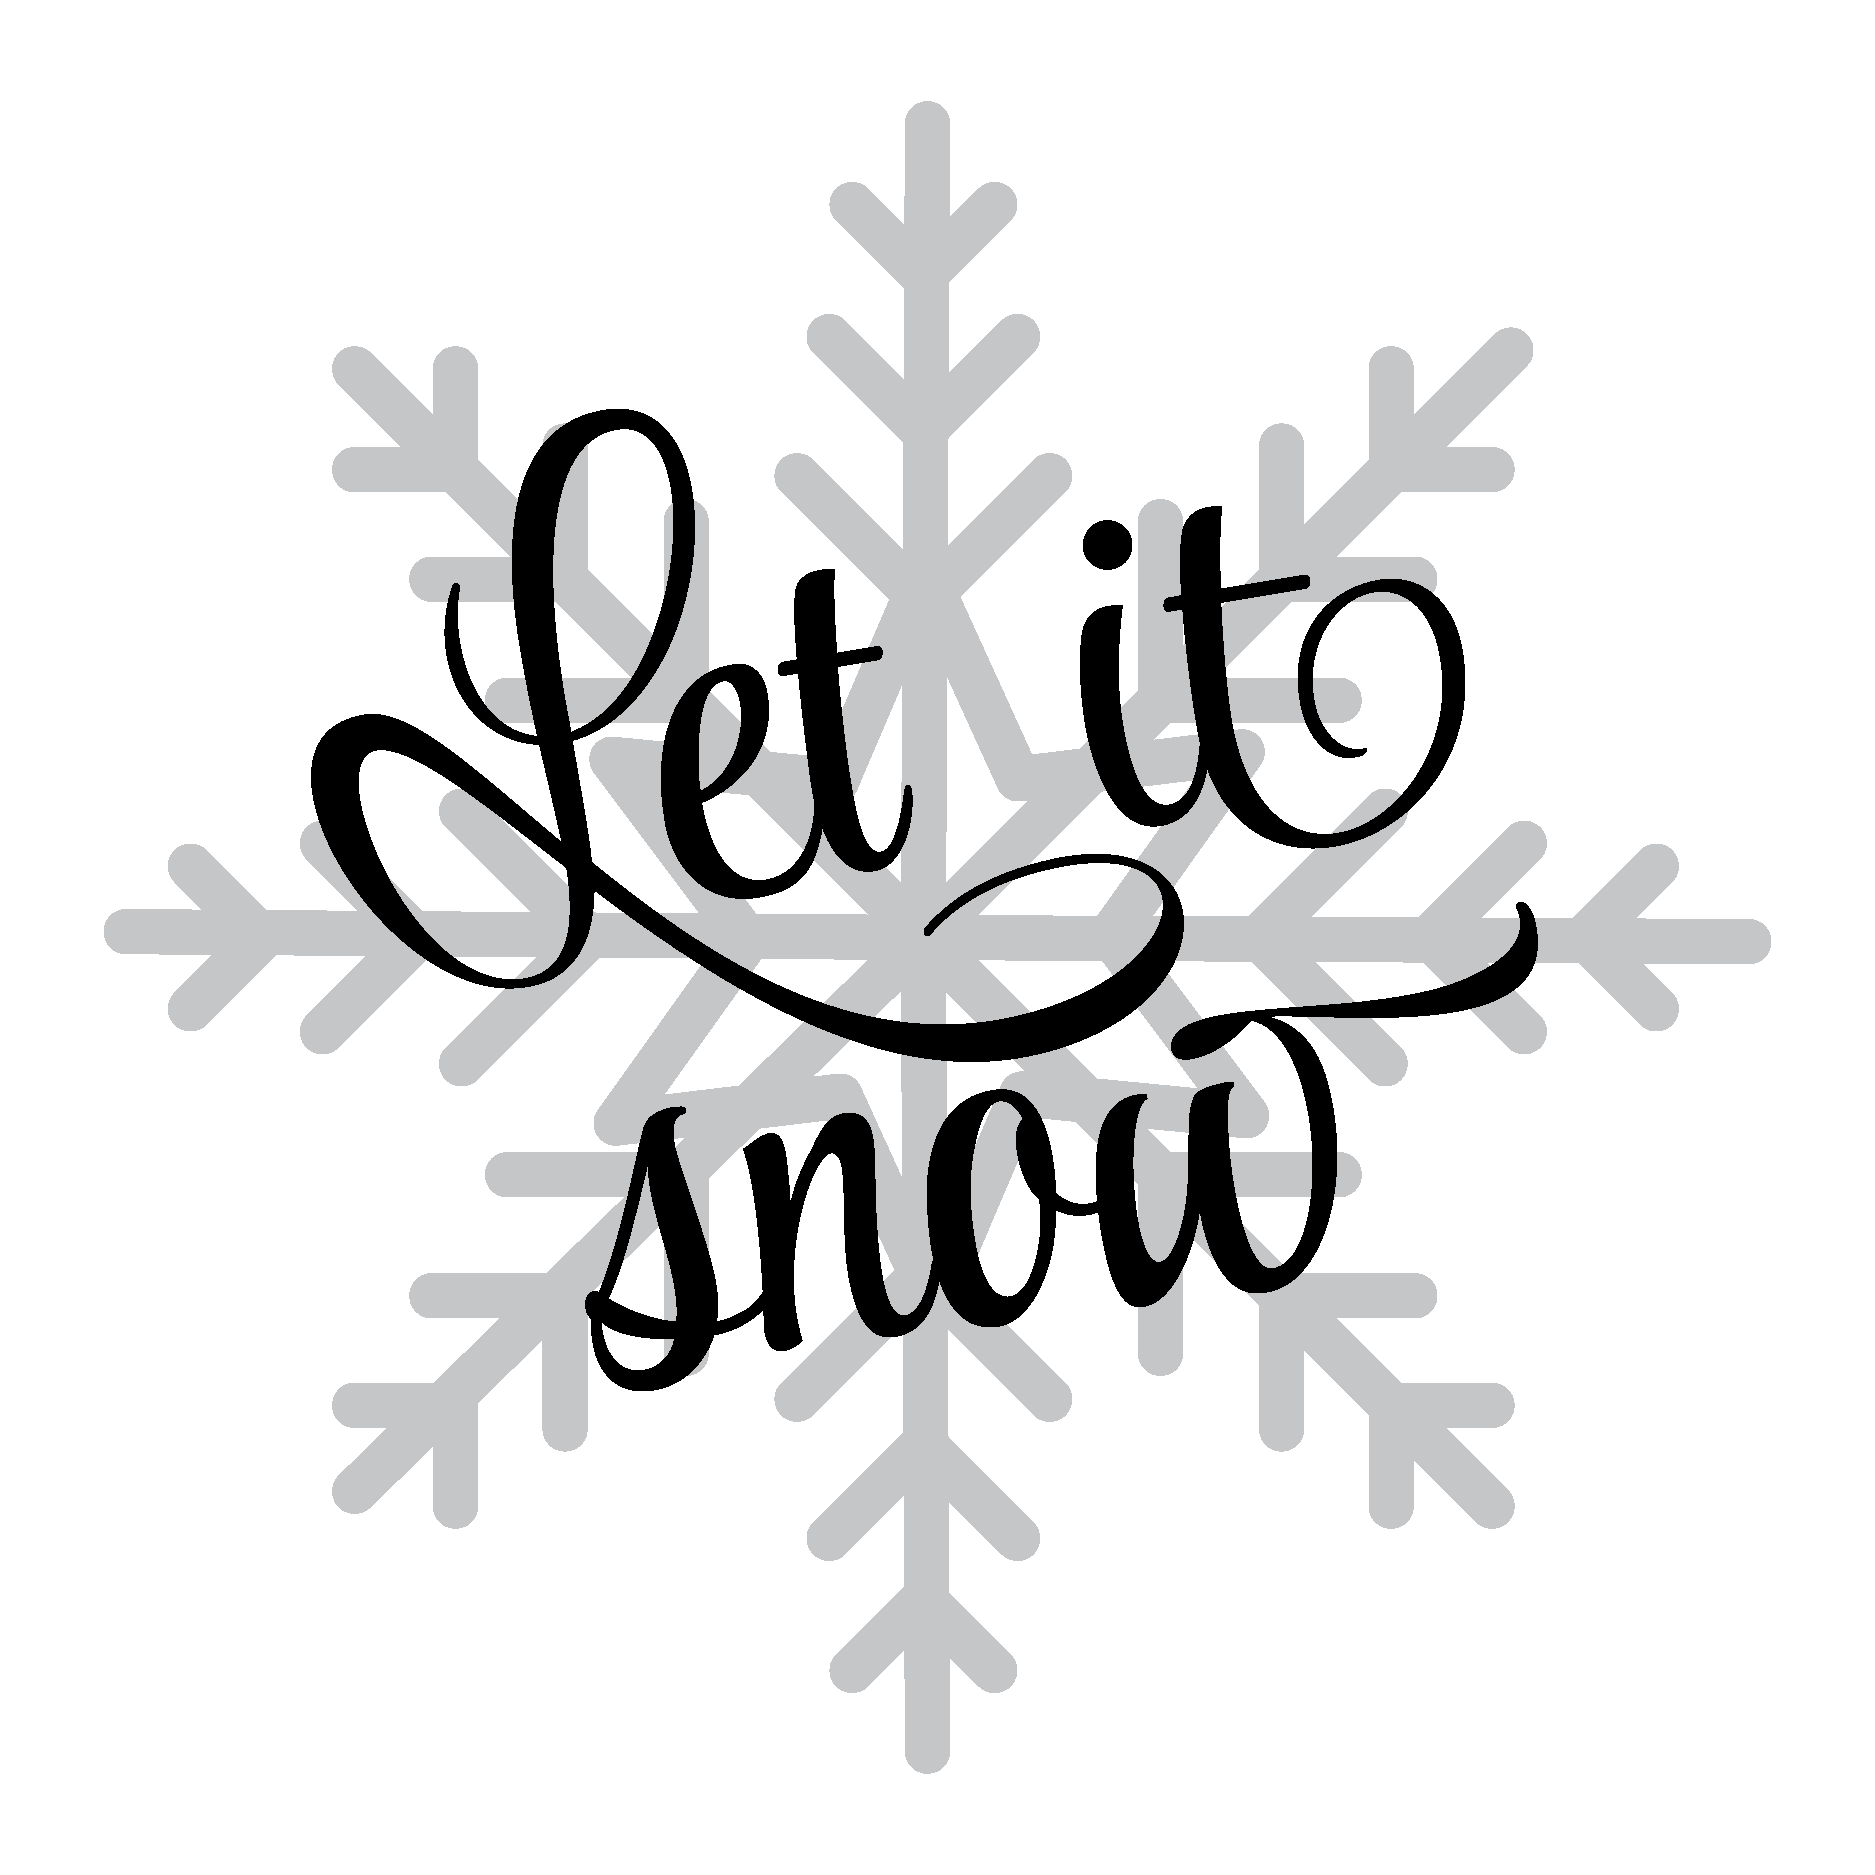 Let it snow png. Snowflake wall quotes decal